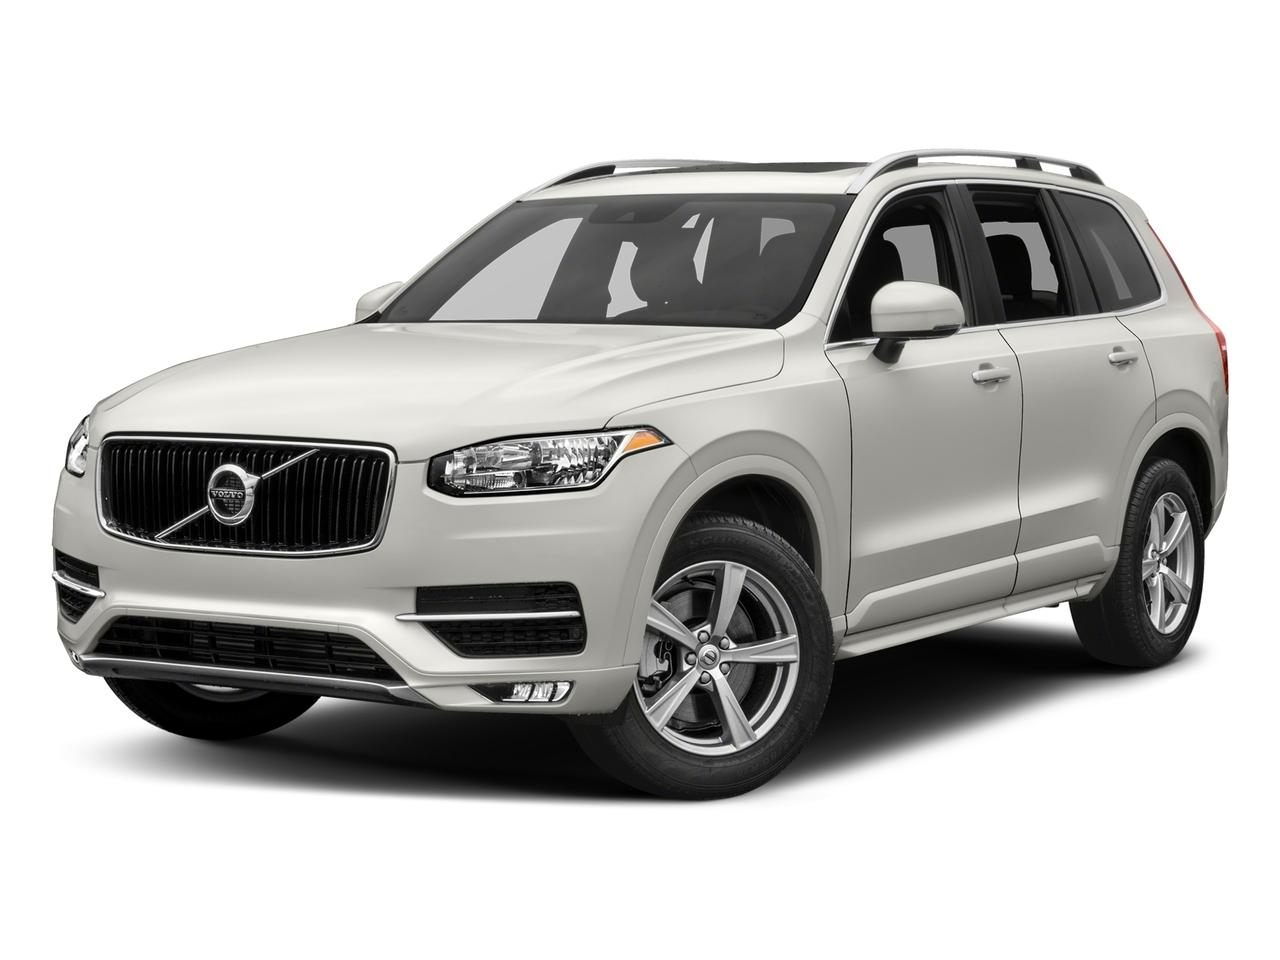 2018 Volvo XC90 Vehicle Photo in Grapevine, TX 76051